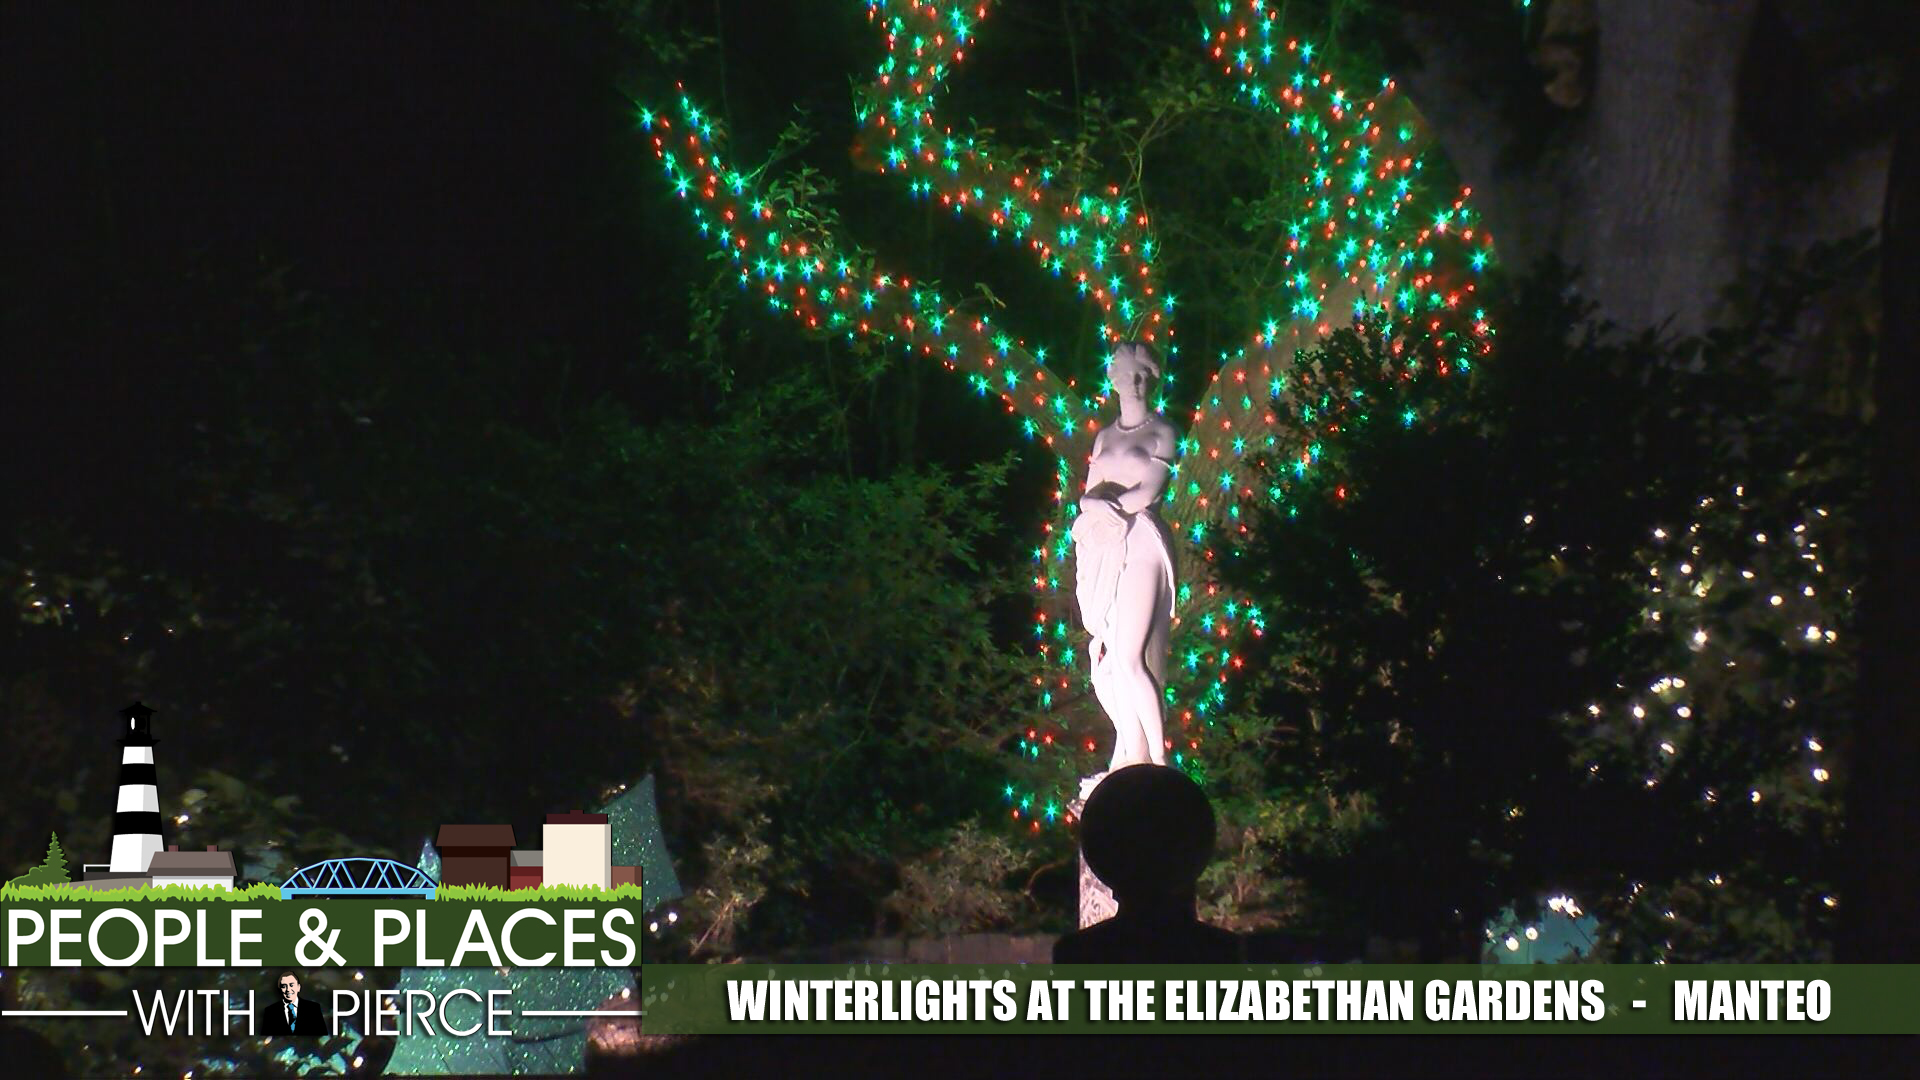 elizabethan-gardens-winterlights-for-web_320652